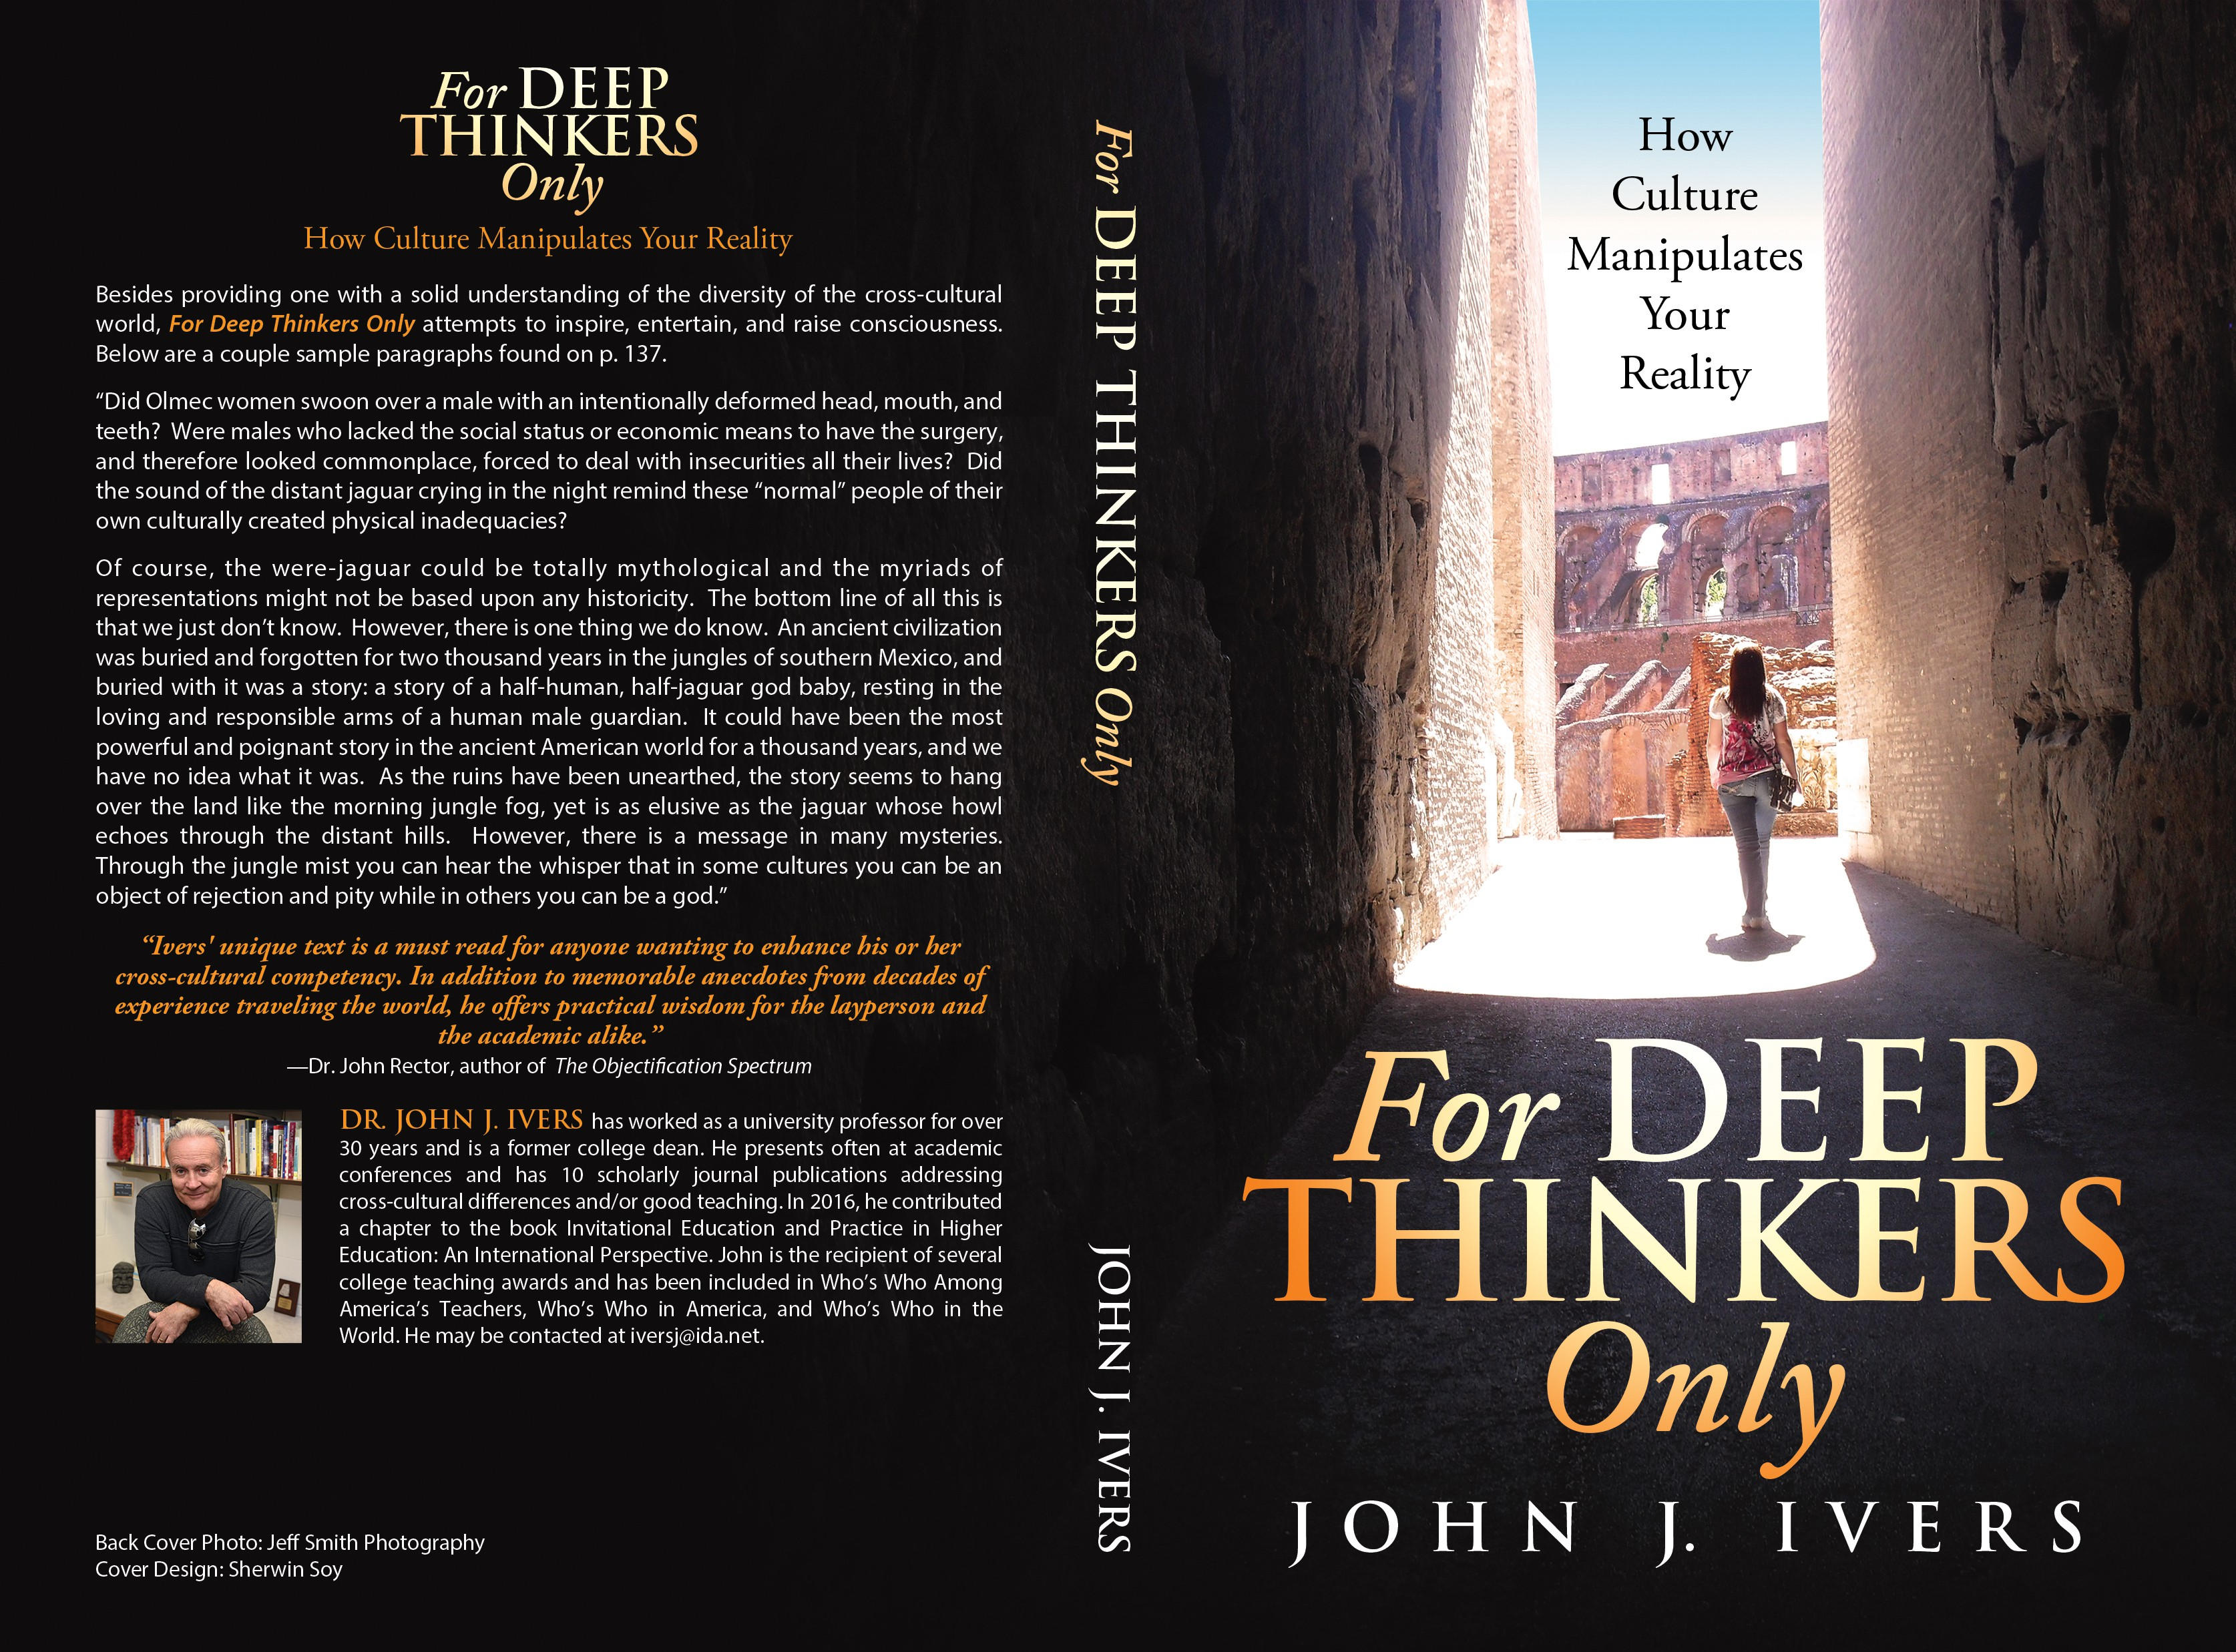 Design a cover that will appeal to deep thinkers